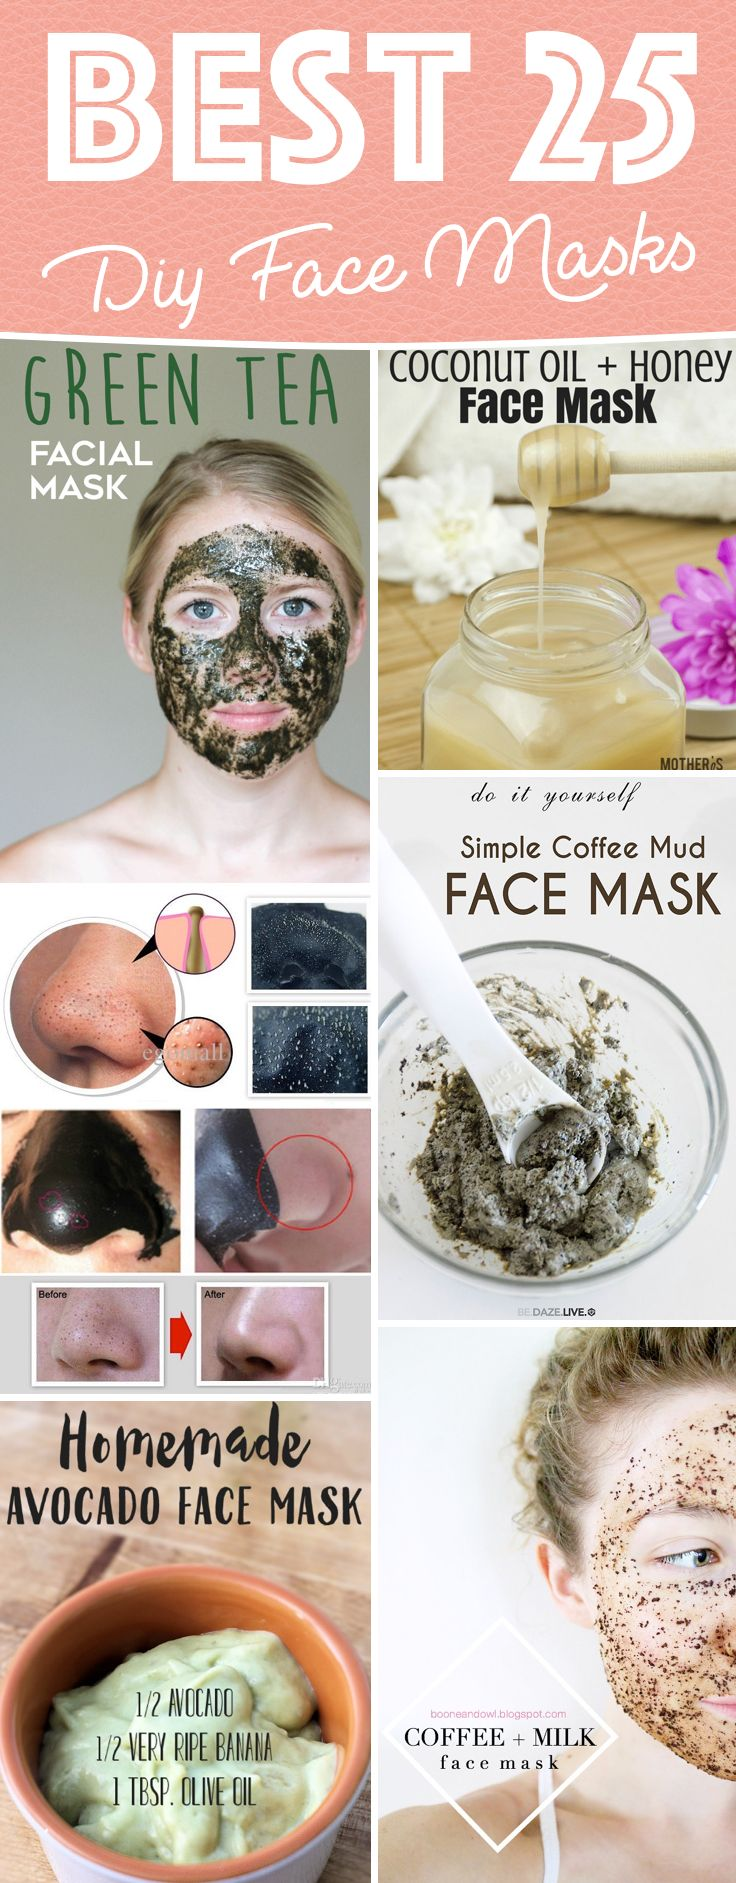 504 best diy images on pinterest crafts creative ideas and bricolage 25 diy face masks casting a magical spell on your skin solutioingenieria Images